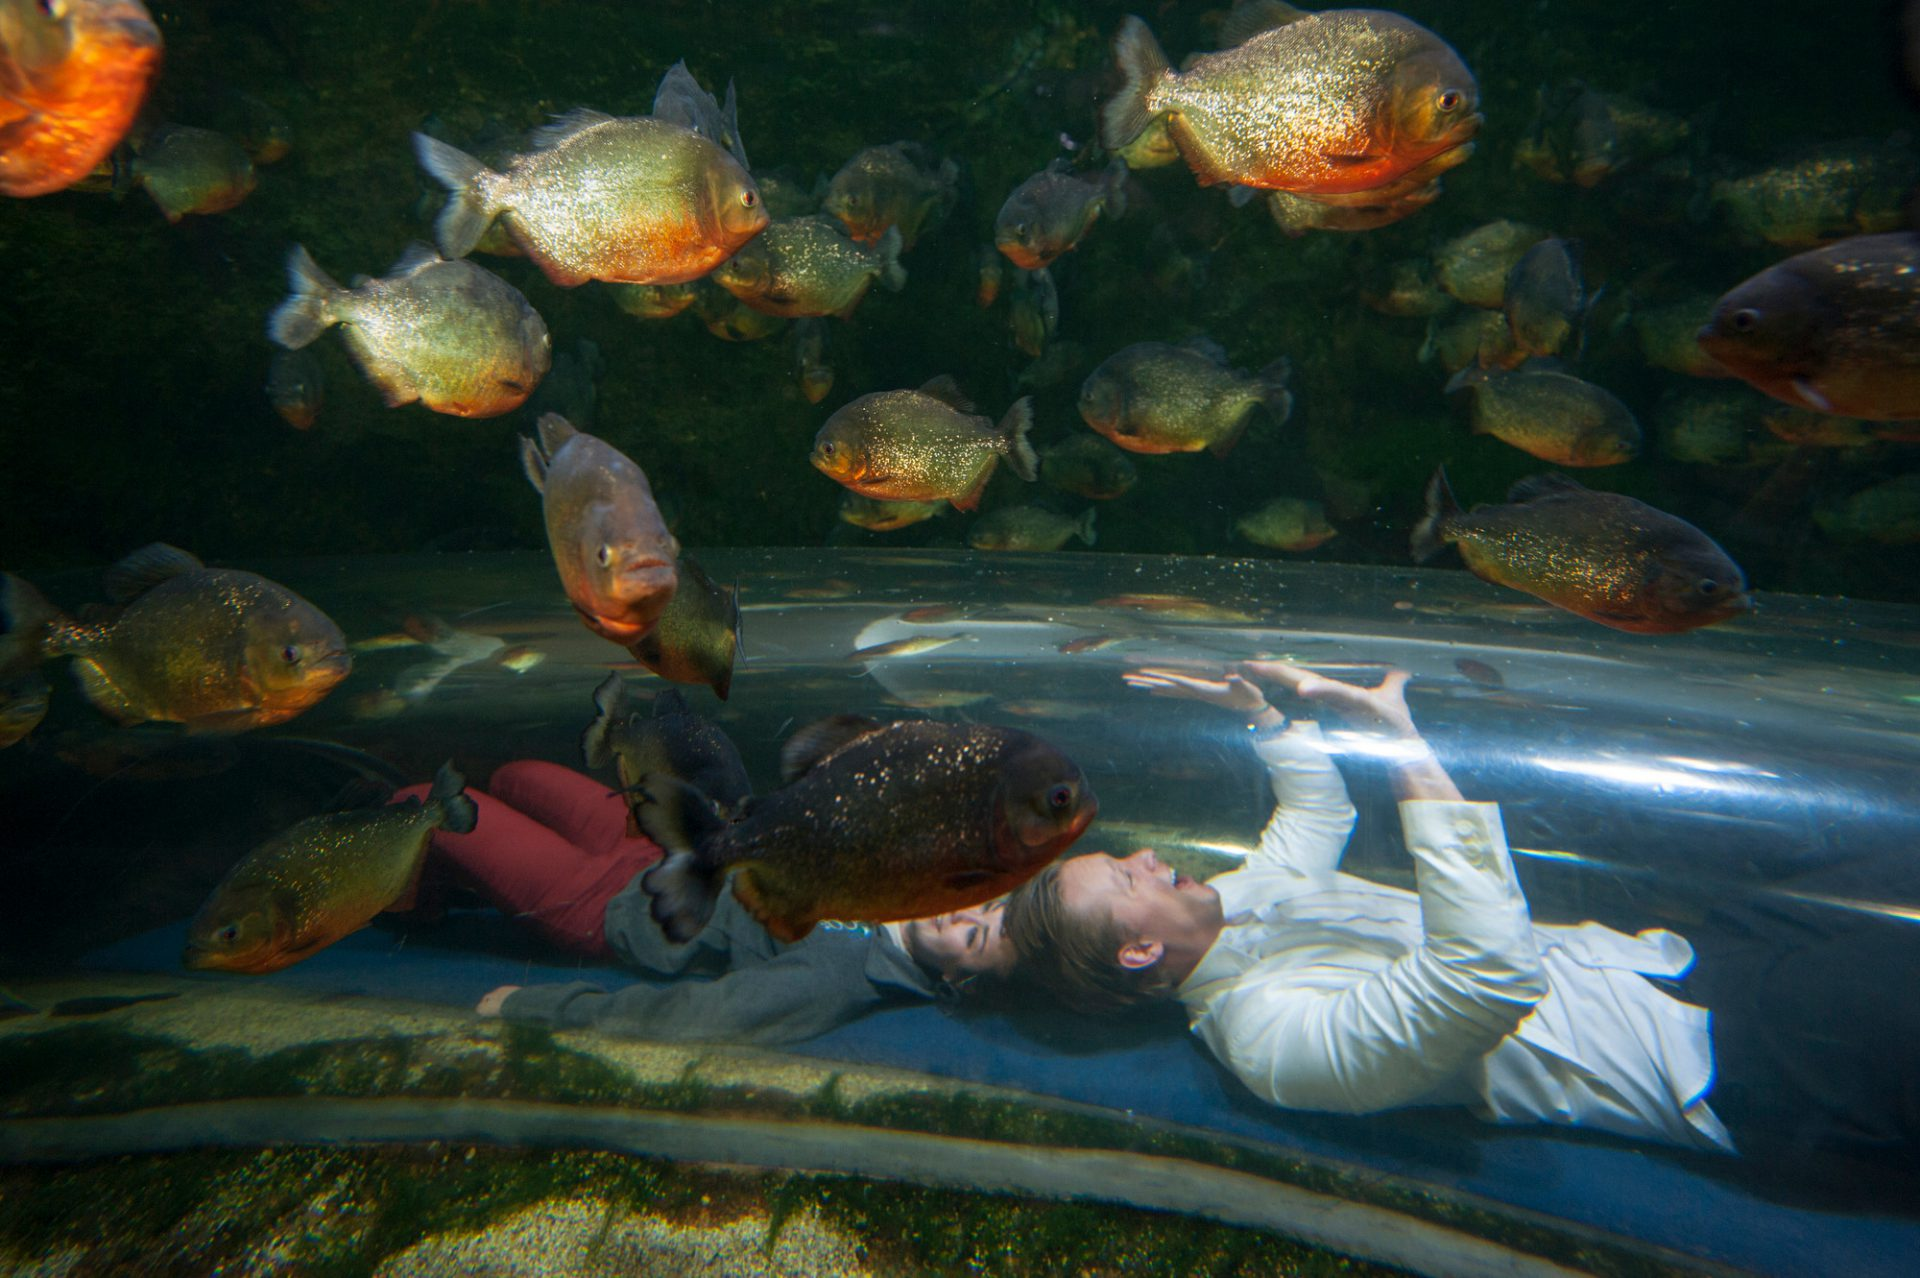 Photo: Tourists crawl through a tunnel at the red bellied piranha tank in the Houston Zoo.